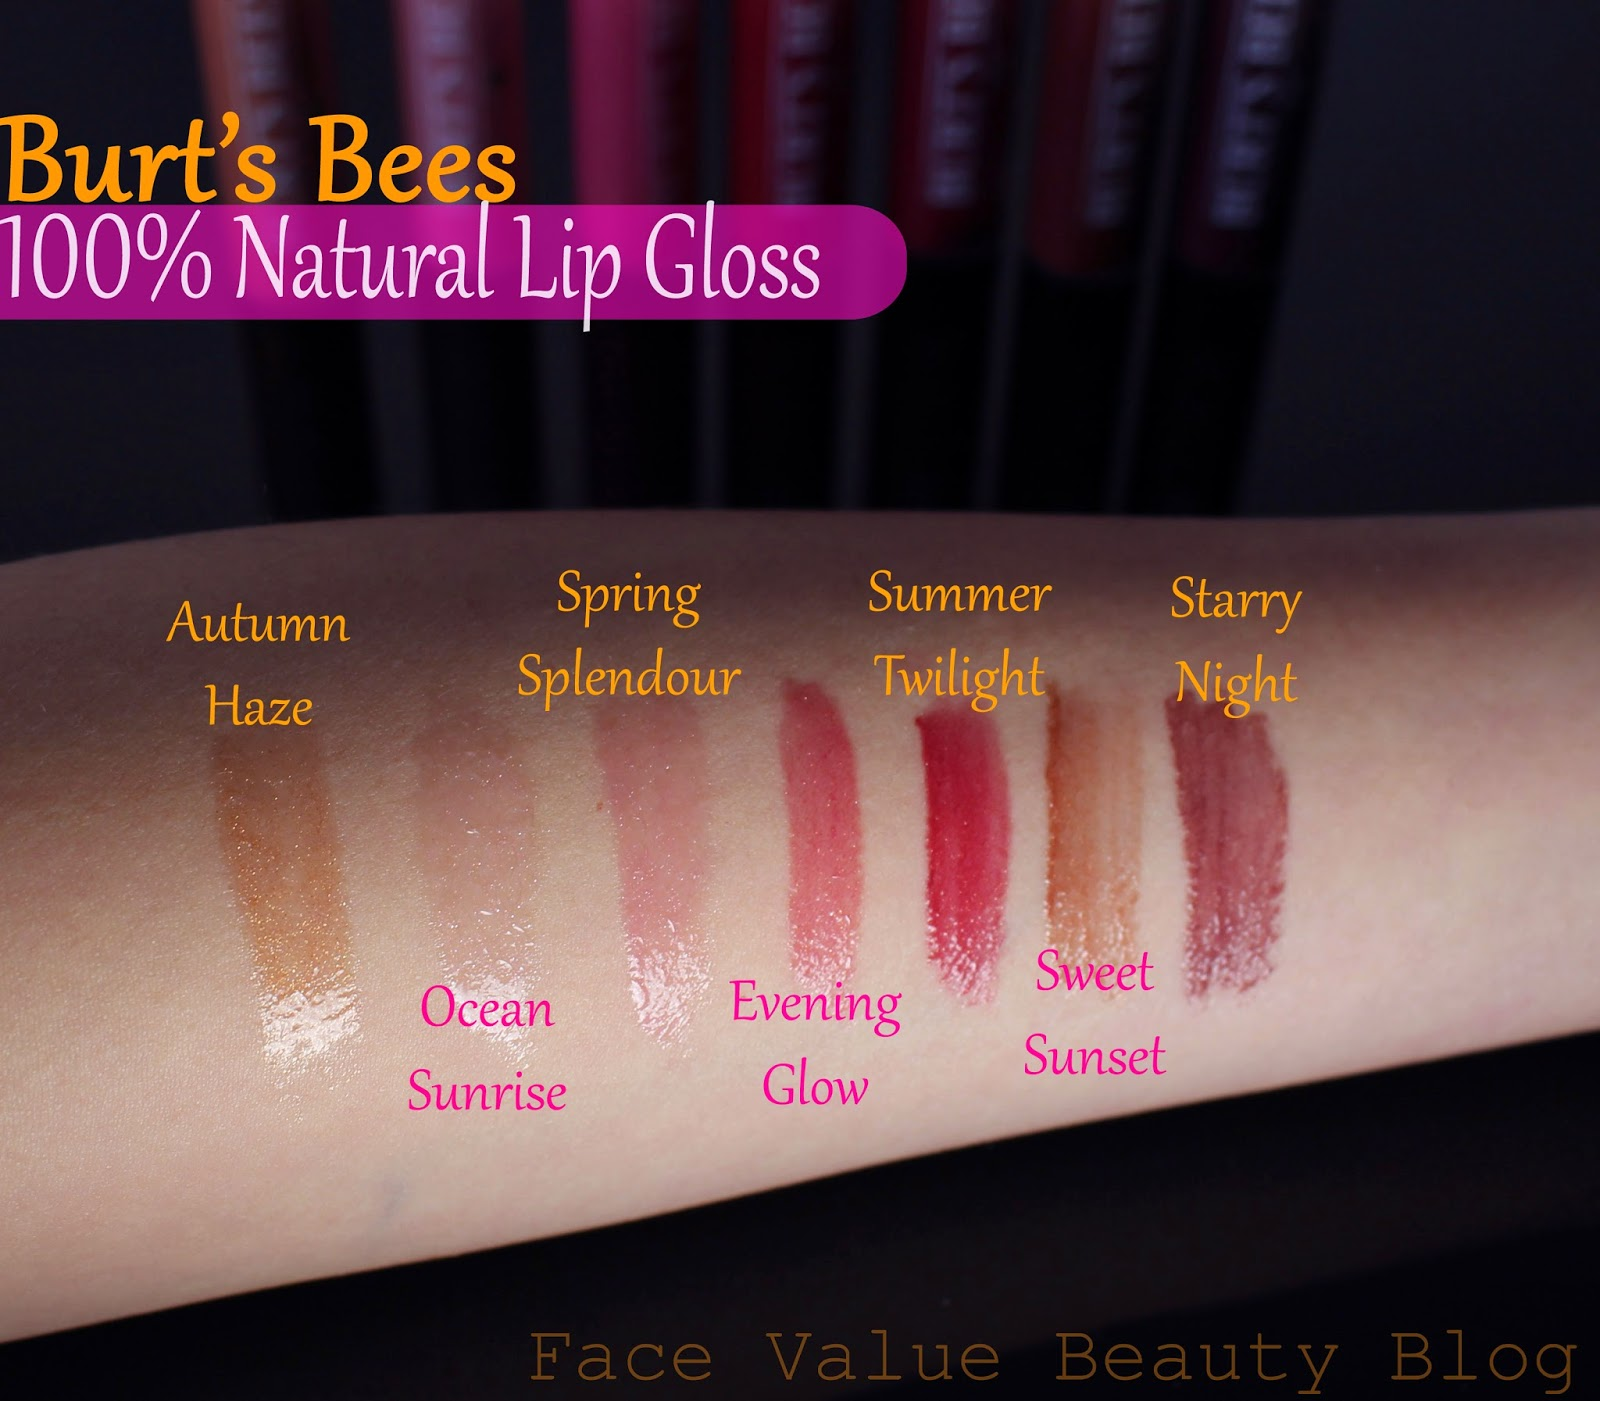 Burts bees lipgloss lip shimmer makeup beauty review